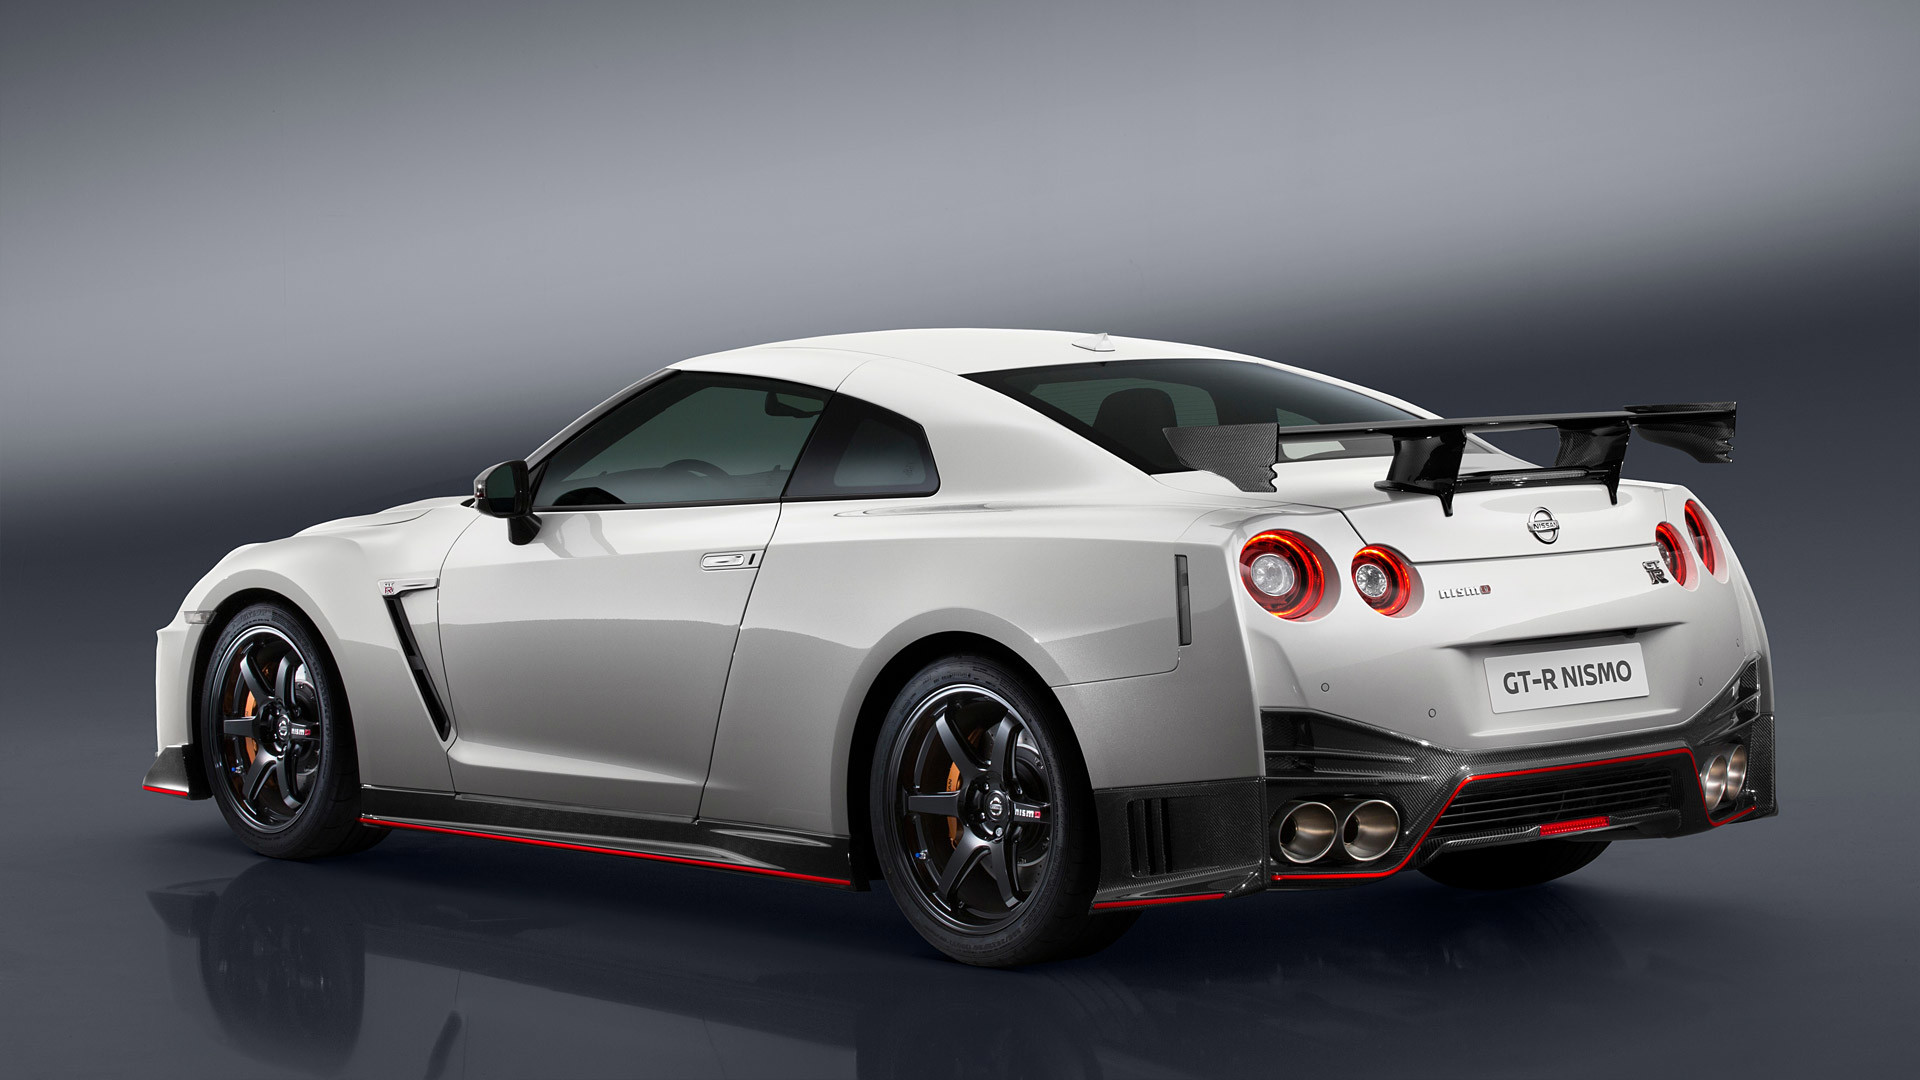 Res: 1920x1080, Nissan GT-R Nismo Wallpapers